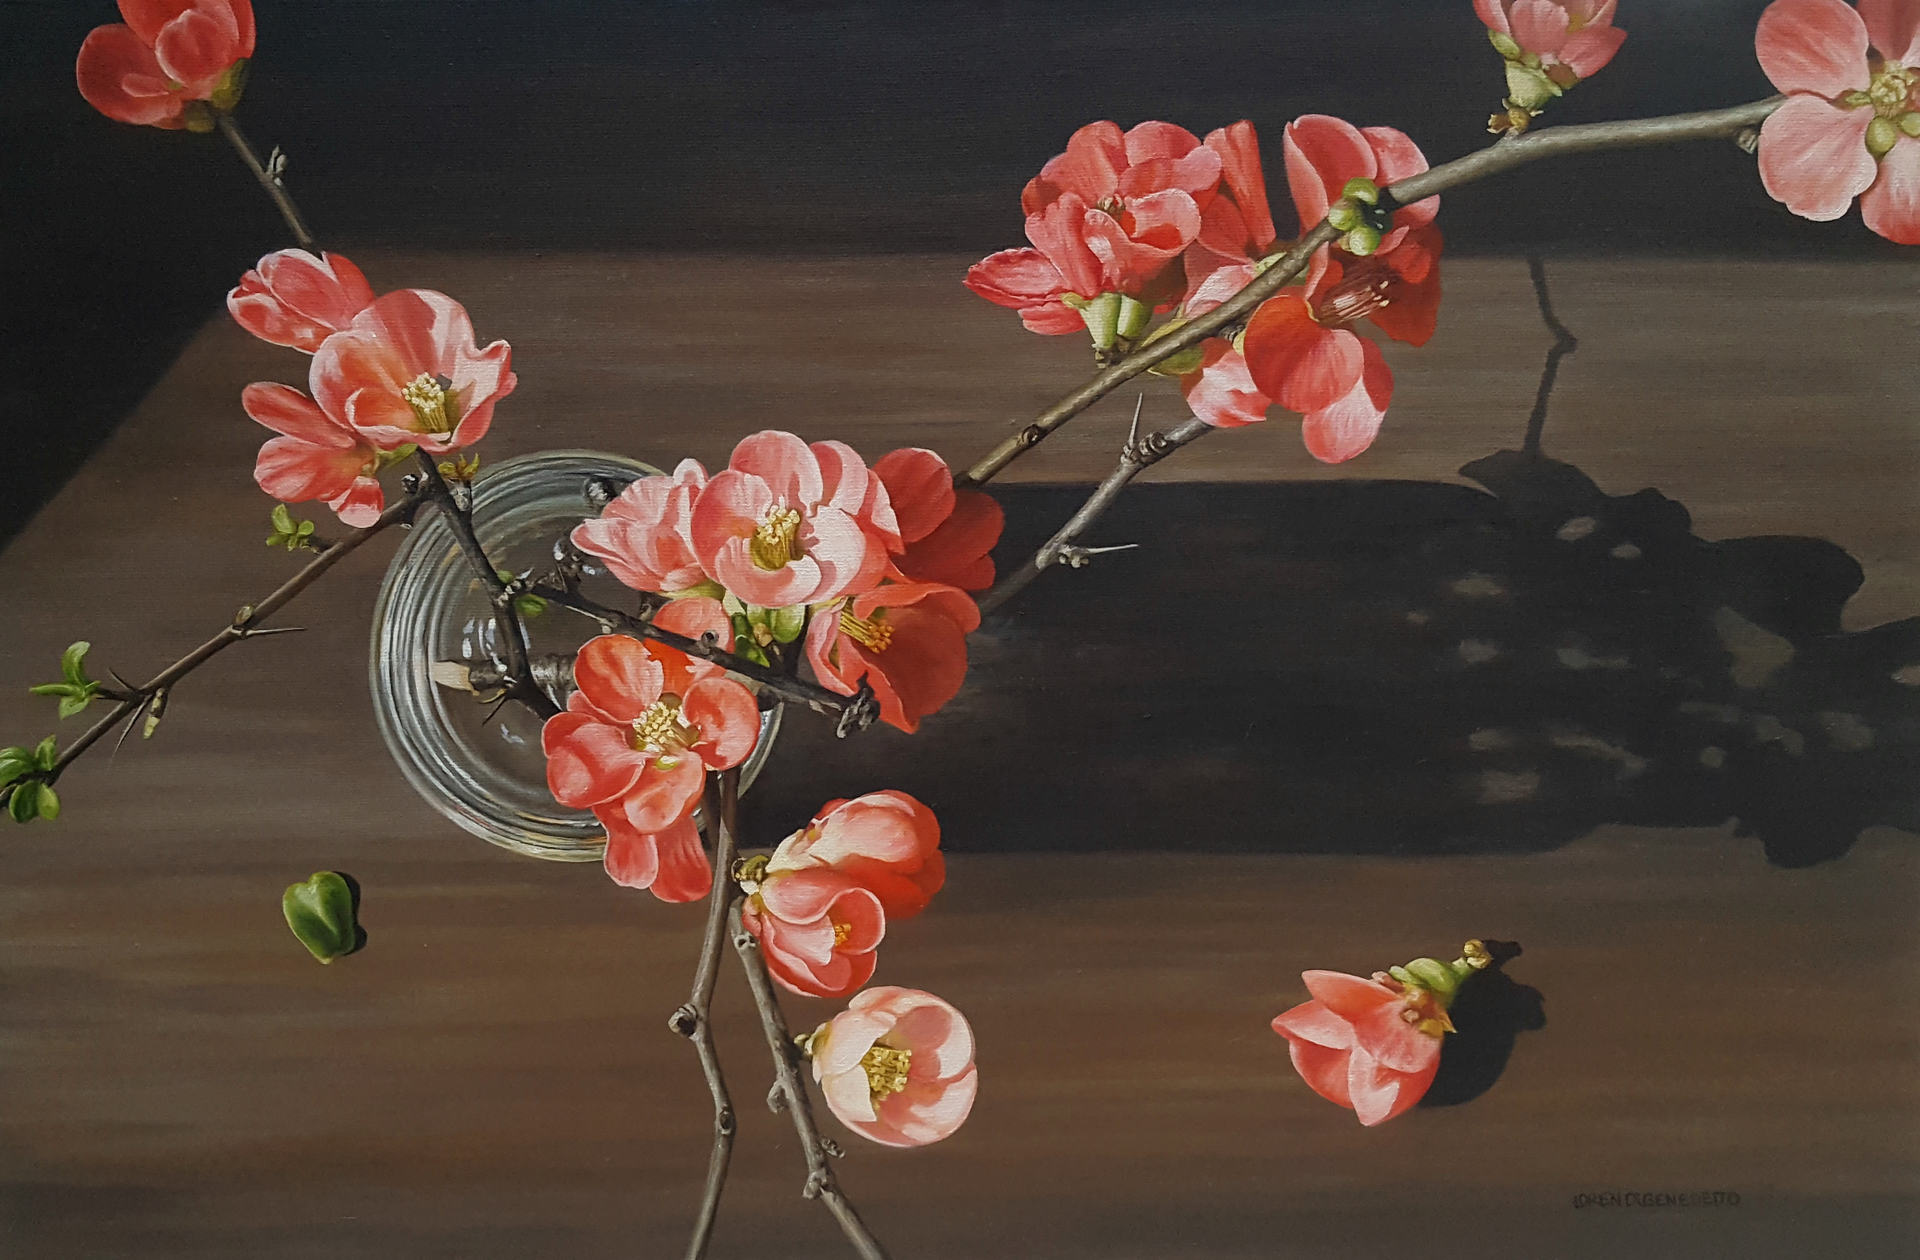 Flowering Quince by Loren DiBenedetto, OPA